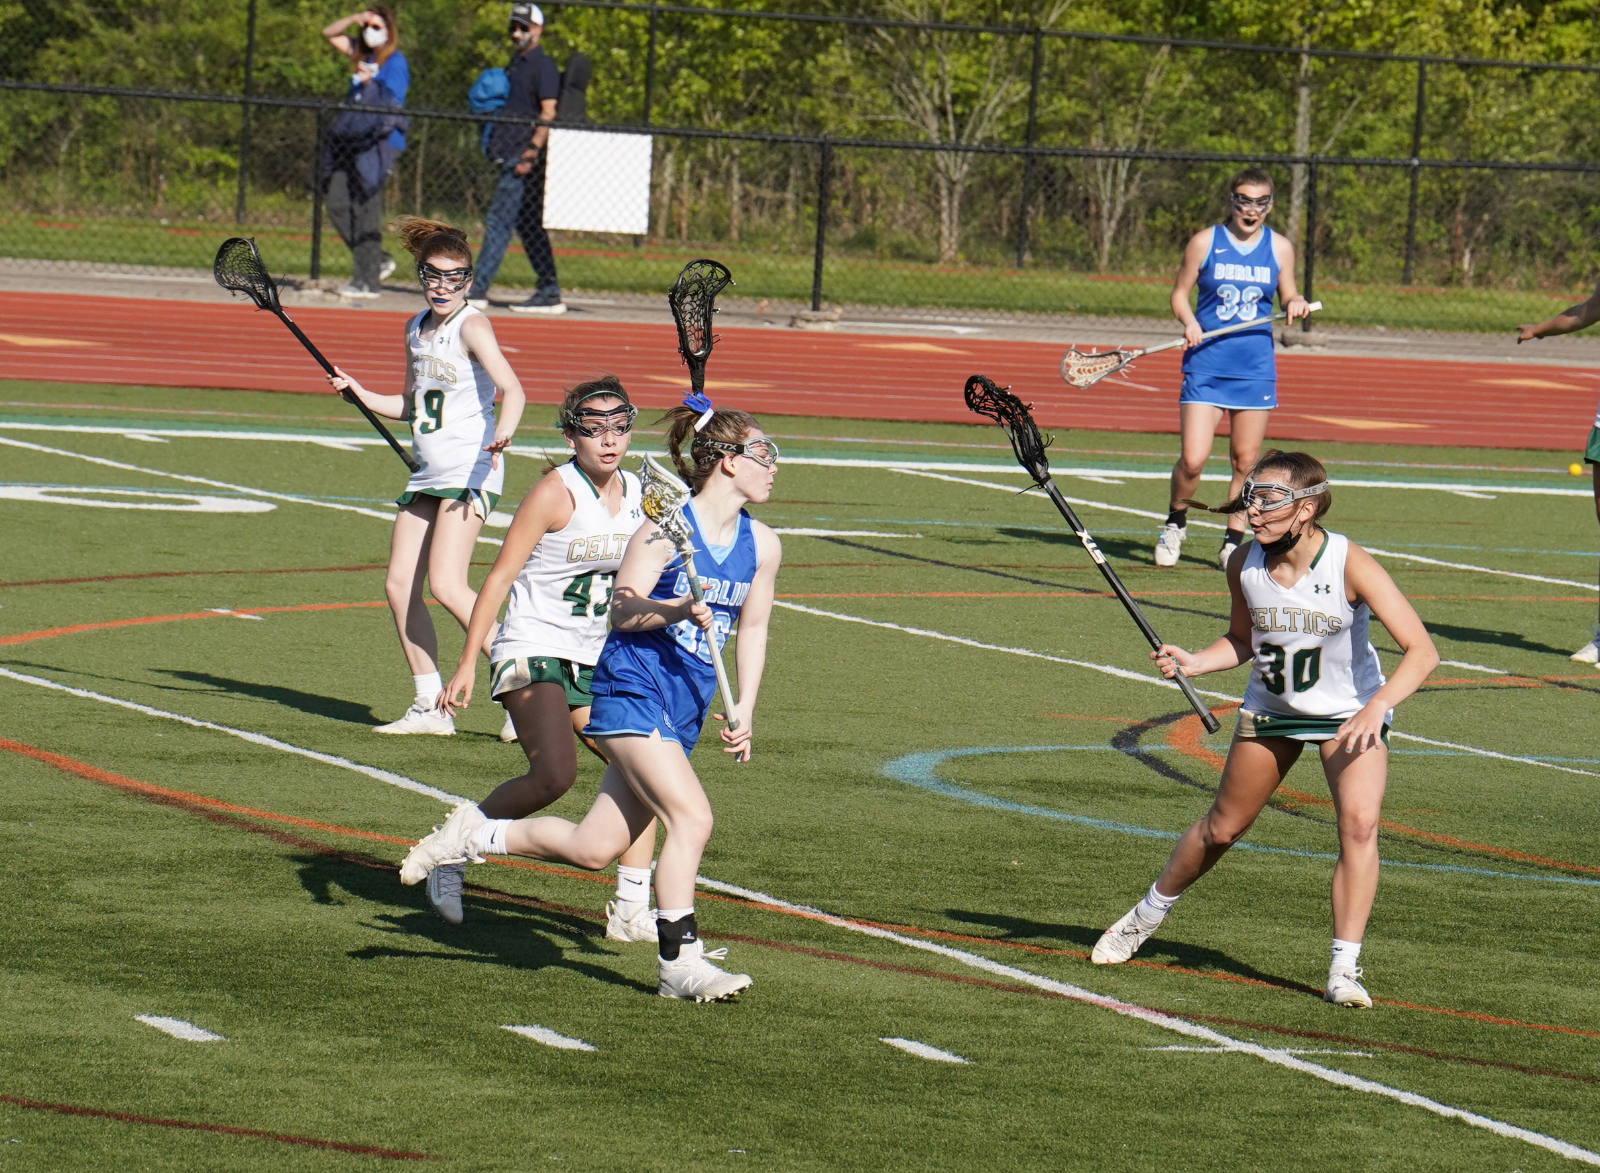 JV Girls Lacrosse vs. Olentangy Berlin 4/27 (photos)